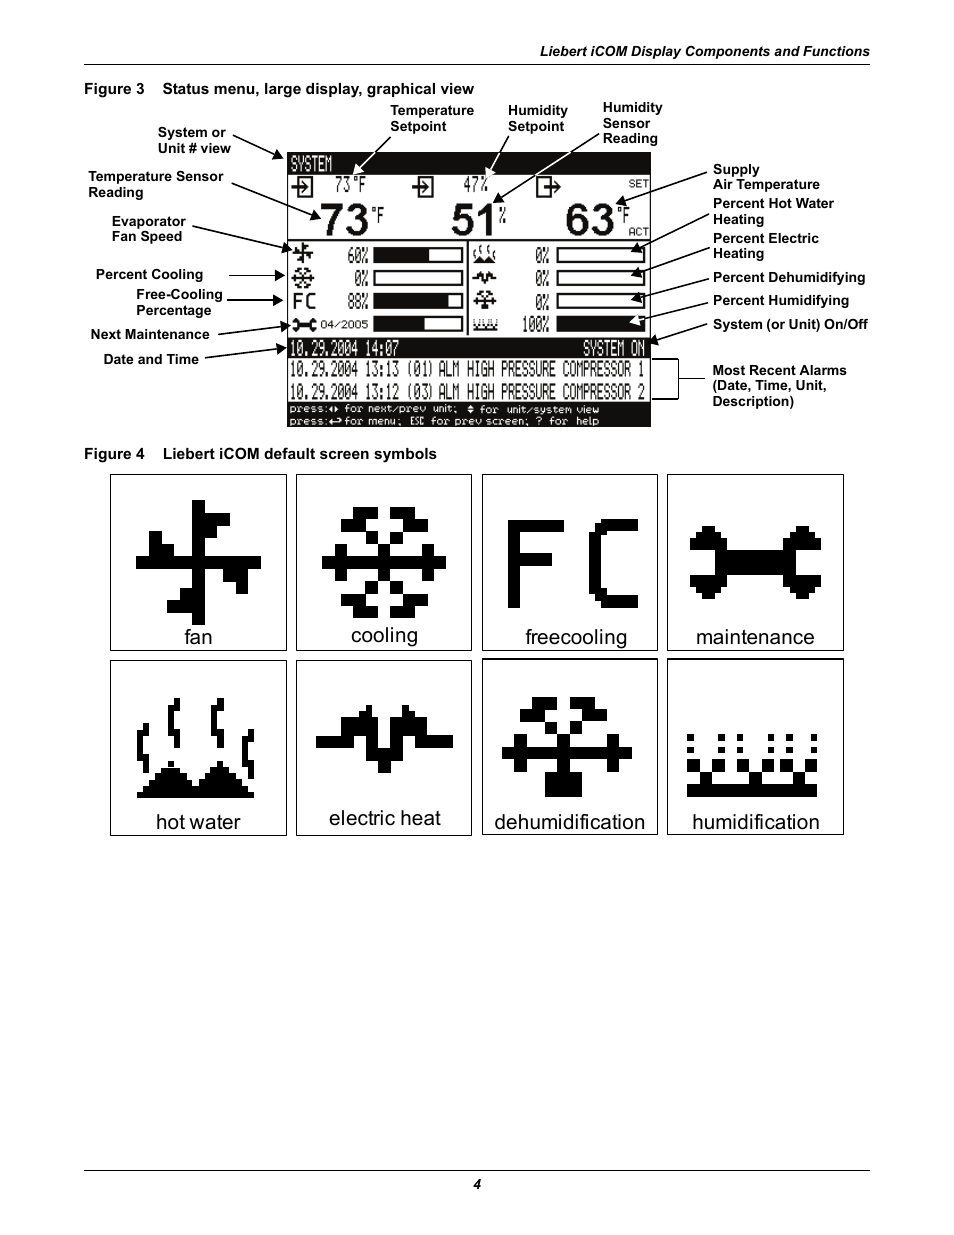 Figure 4 liebert icom default screen symbols, Figure 3